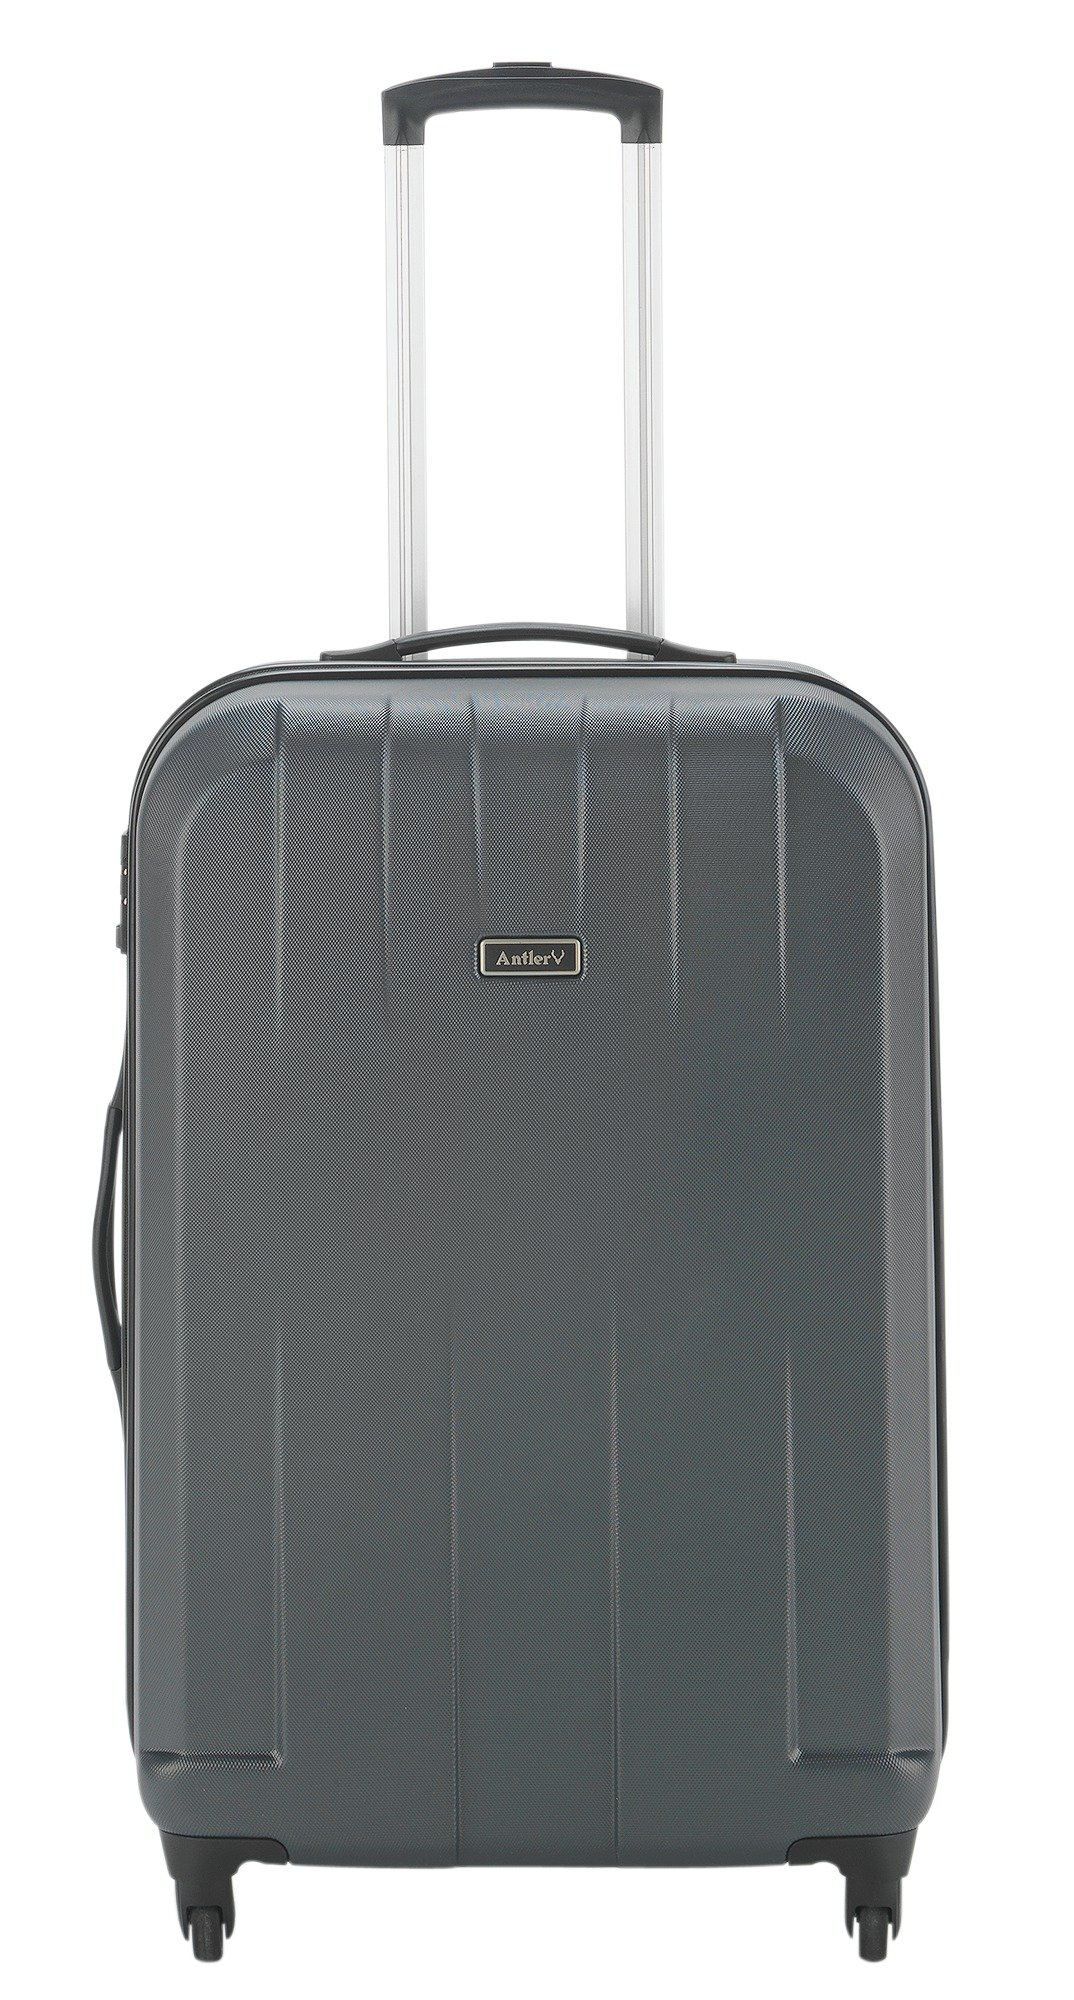 Image of Antler Quadrant Medium 4 Wheel Hard Suitcase - Black/Silver